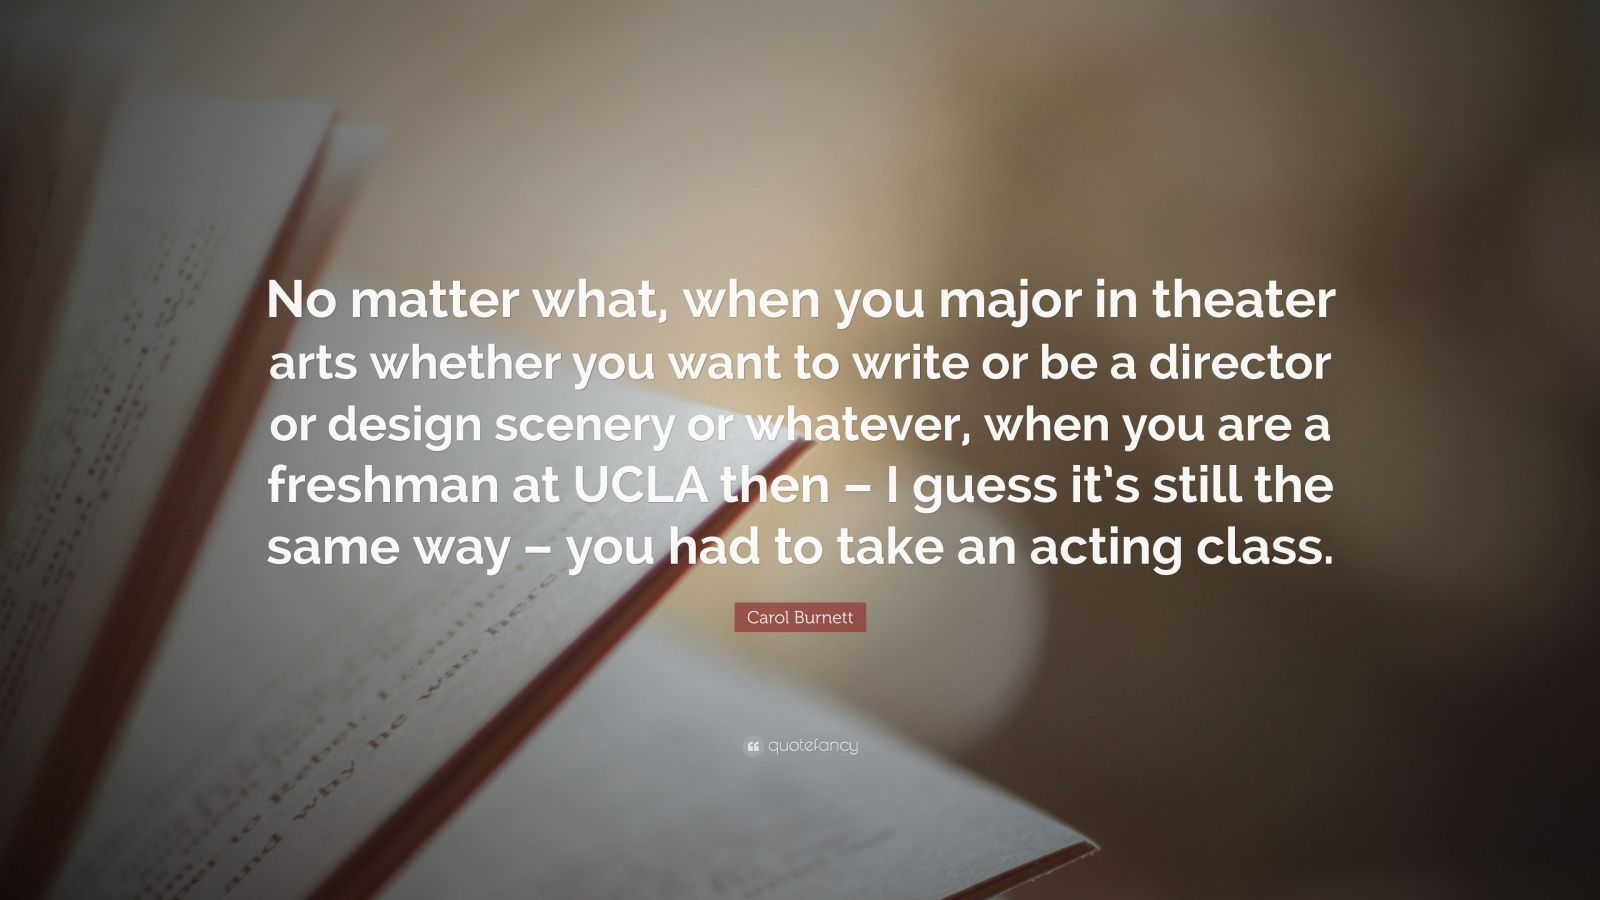 """Carol Burnett Quote: """"No matter what, when you major in theater arts whether you want to write or be a director or design scenery or whatever, when you are a freshman at UCLA then – I guess it's still the same way – you had to take an acting class."""""""